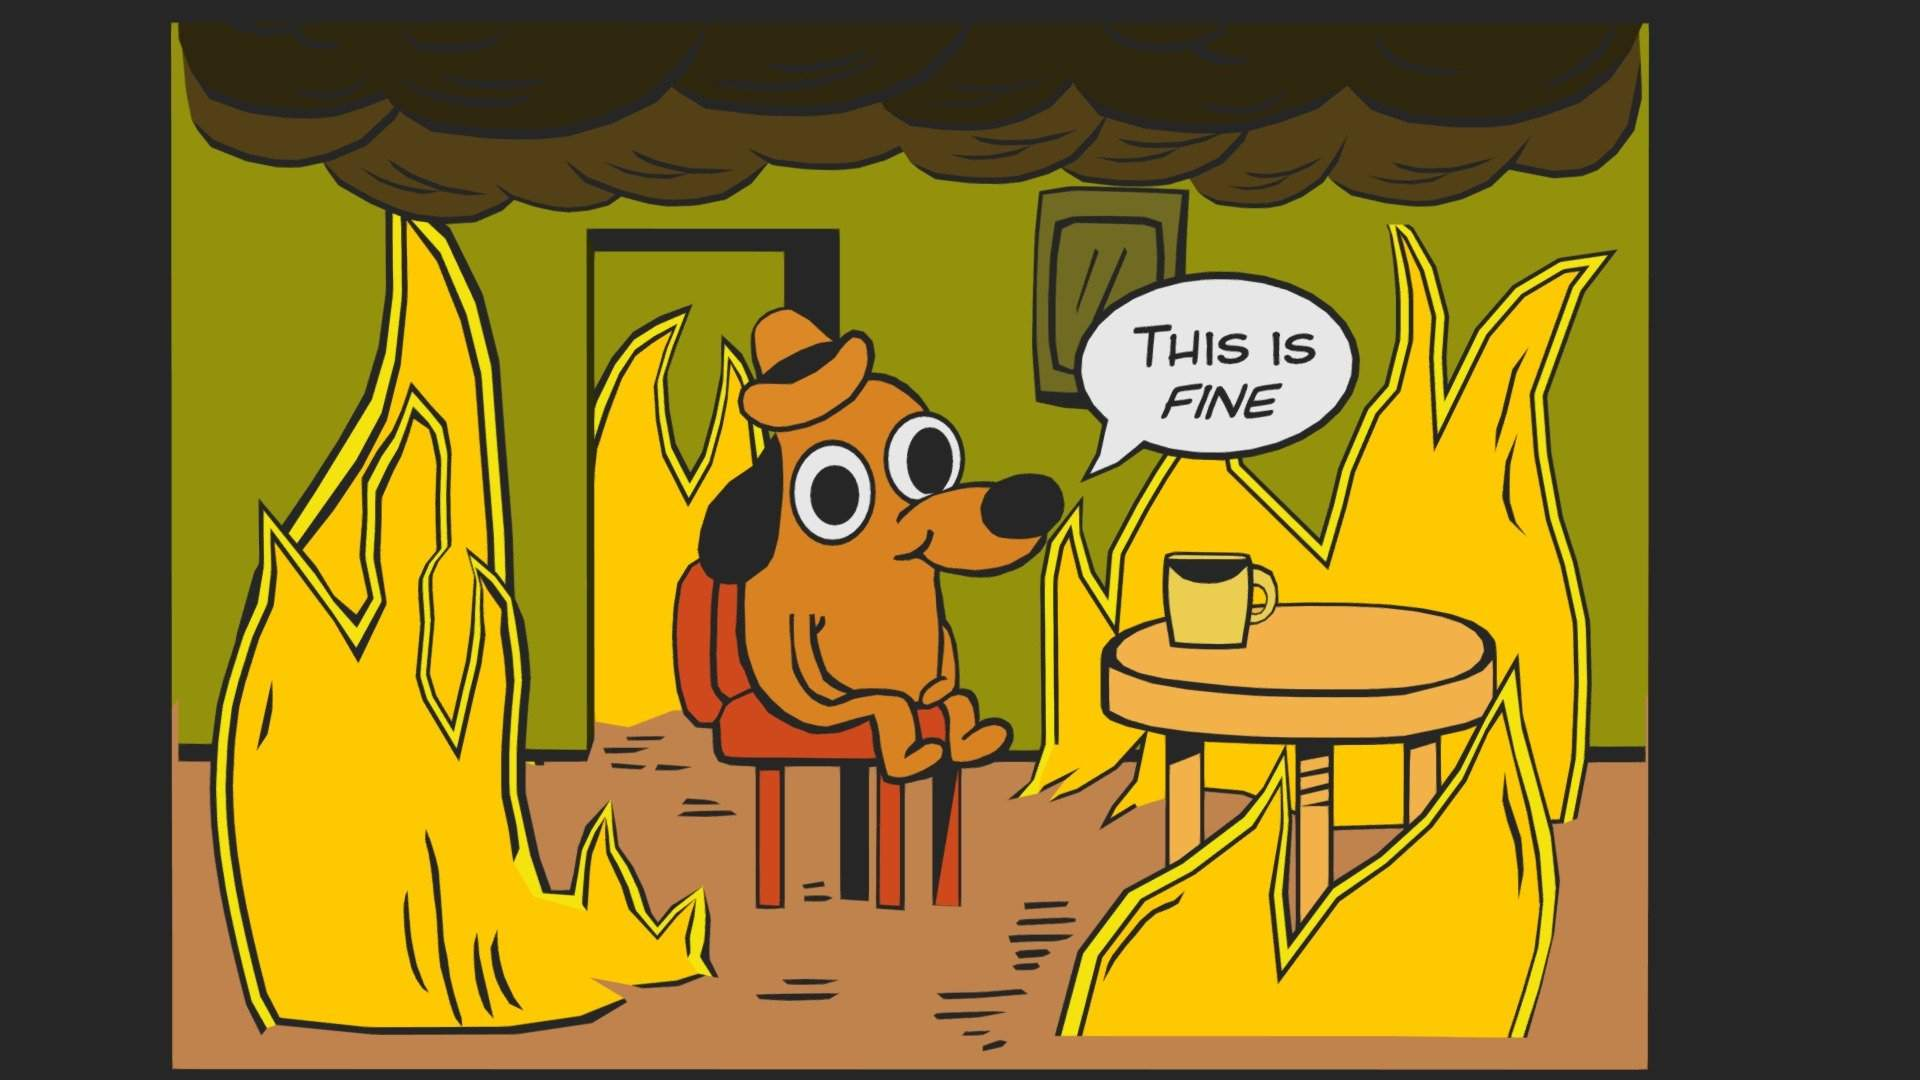 This is fine  7532821624224d0ca7745204e904dce3.jpeg